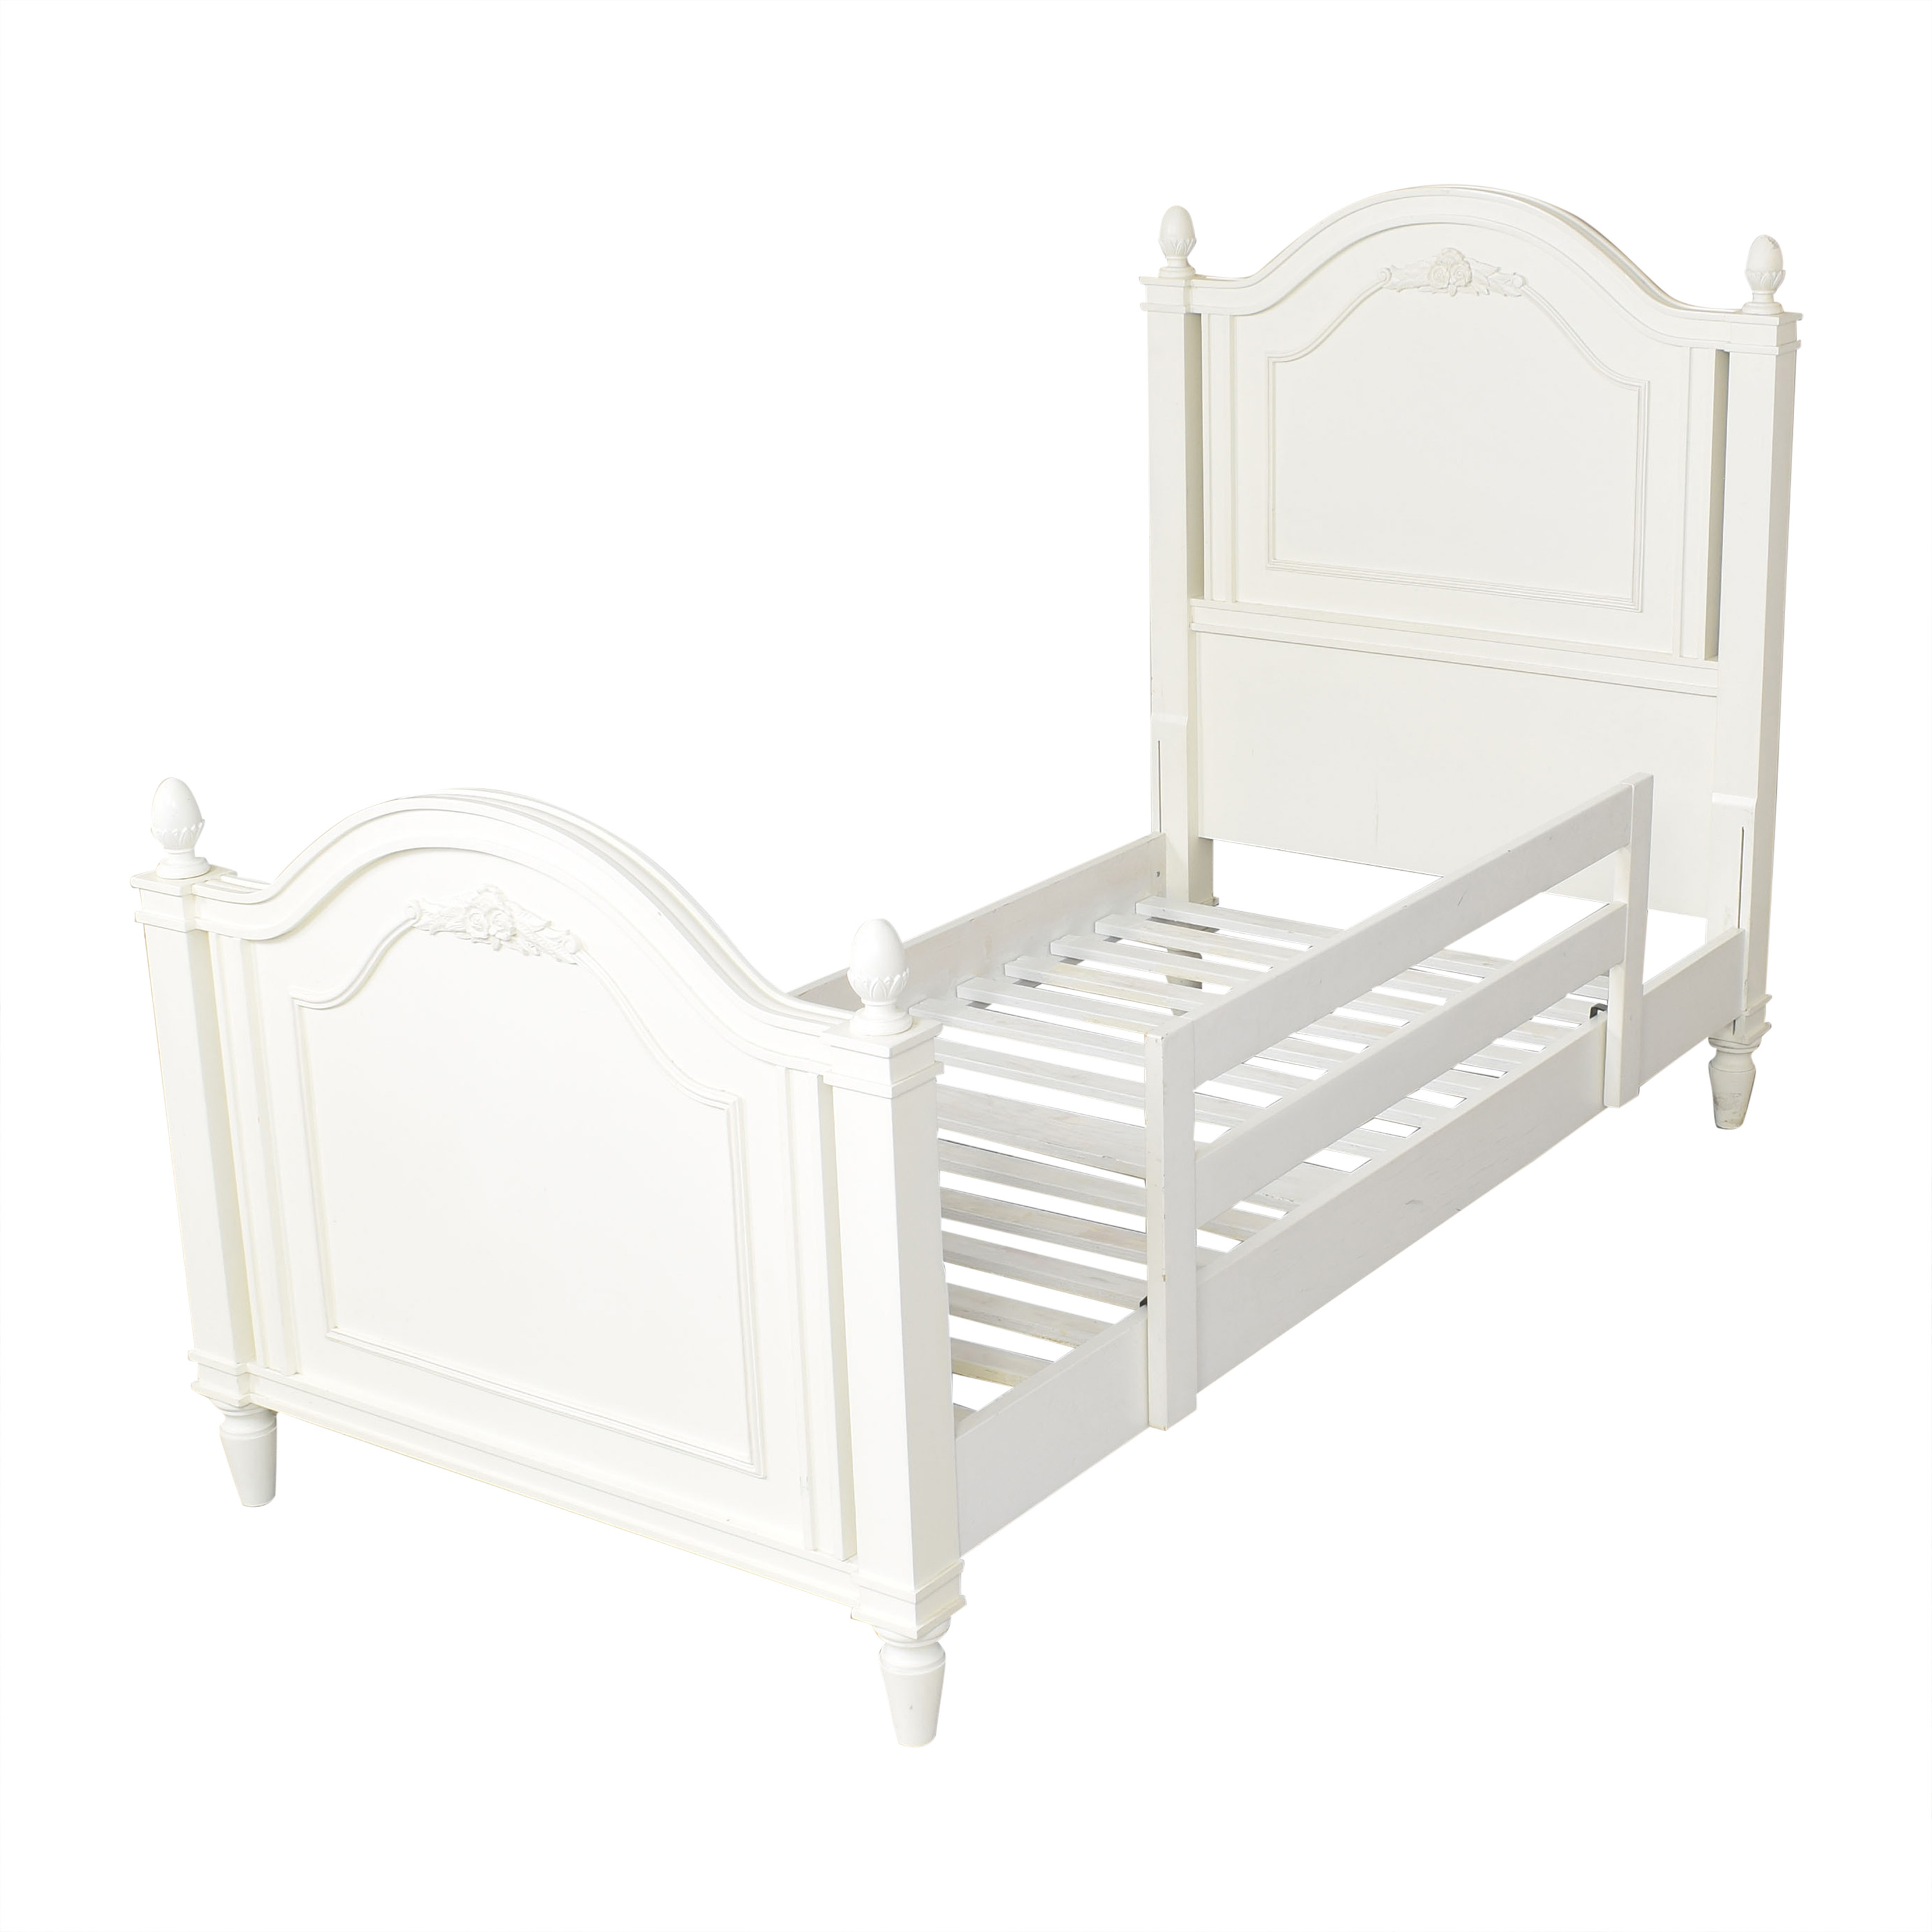 Stanley Furniture Stanley Furniture Young America Twin Low Post Bed Bed Frames